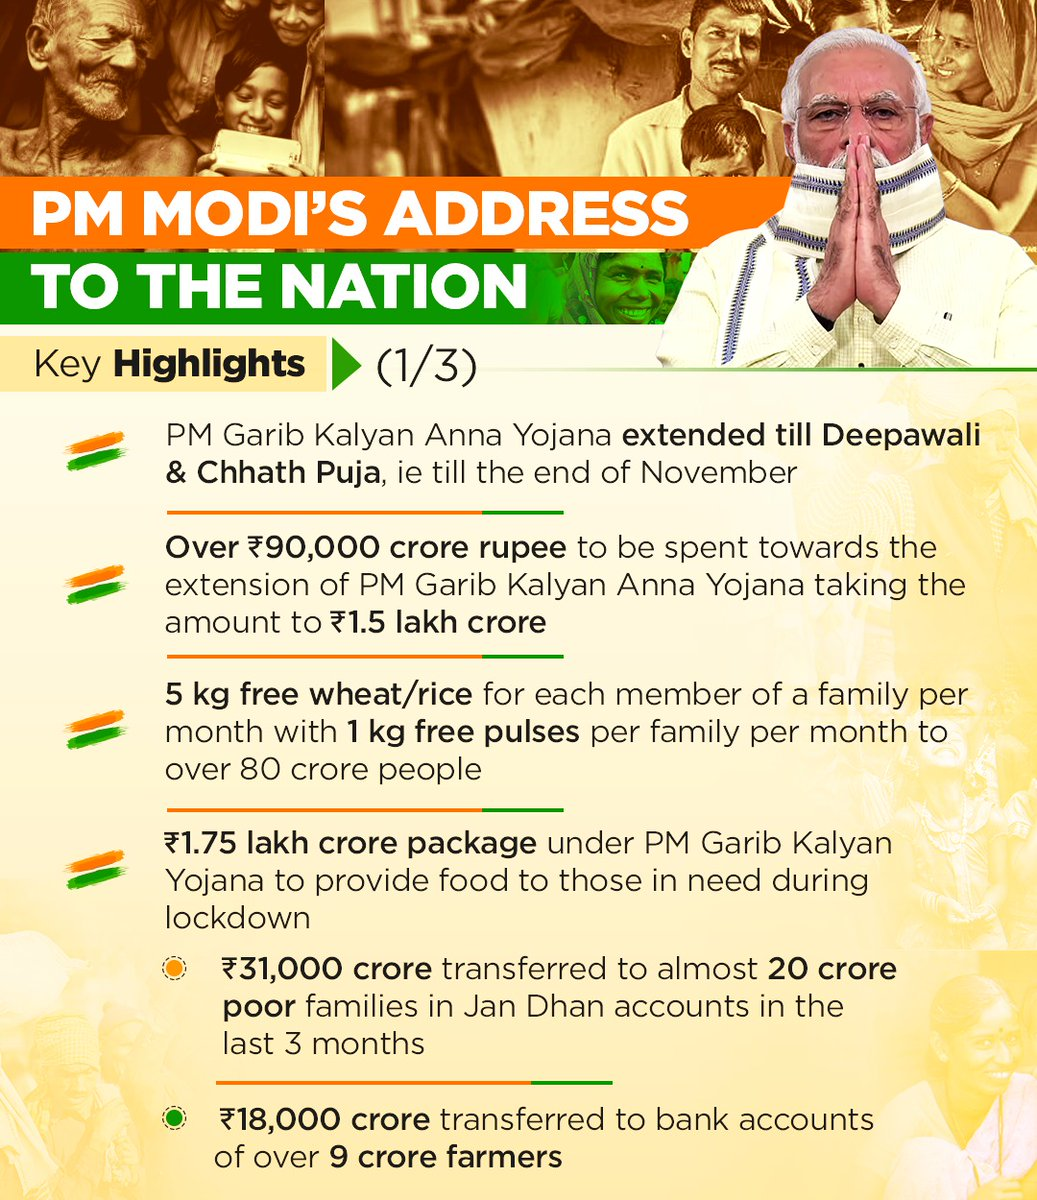 In case you missed PM @narendramodi's address, here are the key highlights of his address to the Nation.   #AatmaNirbharBharat  @CMOFFICEHP @DDNewslive @dprhp @airnewsalerts @DDNewsShimla @PBNS_India @airnews_shimla @PMOIndia   https://t.co/Qd6CvSFRsi